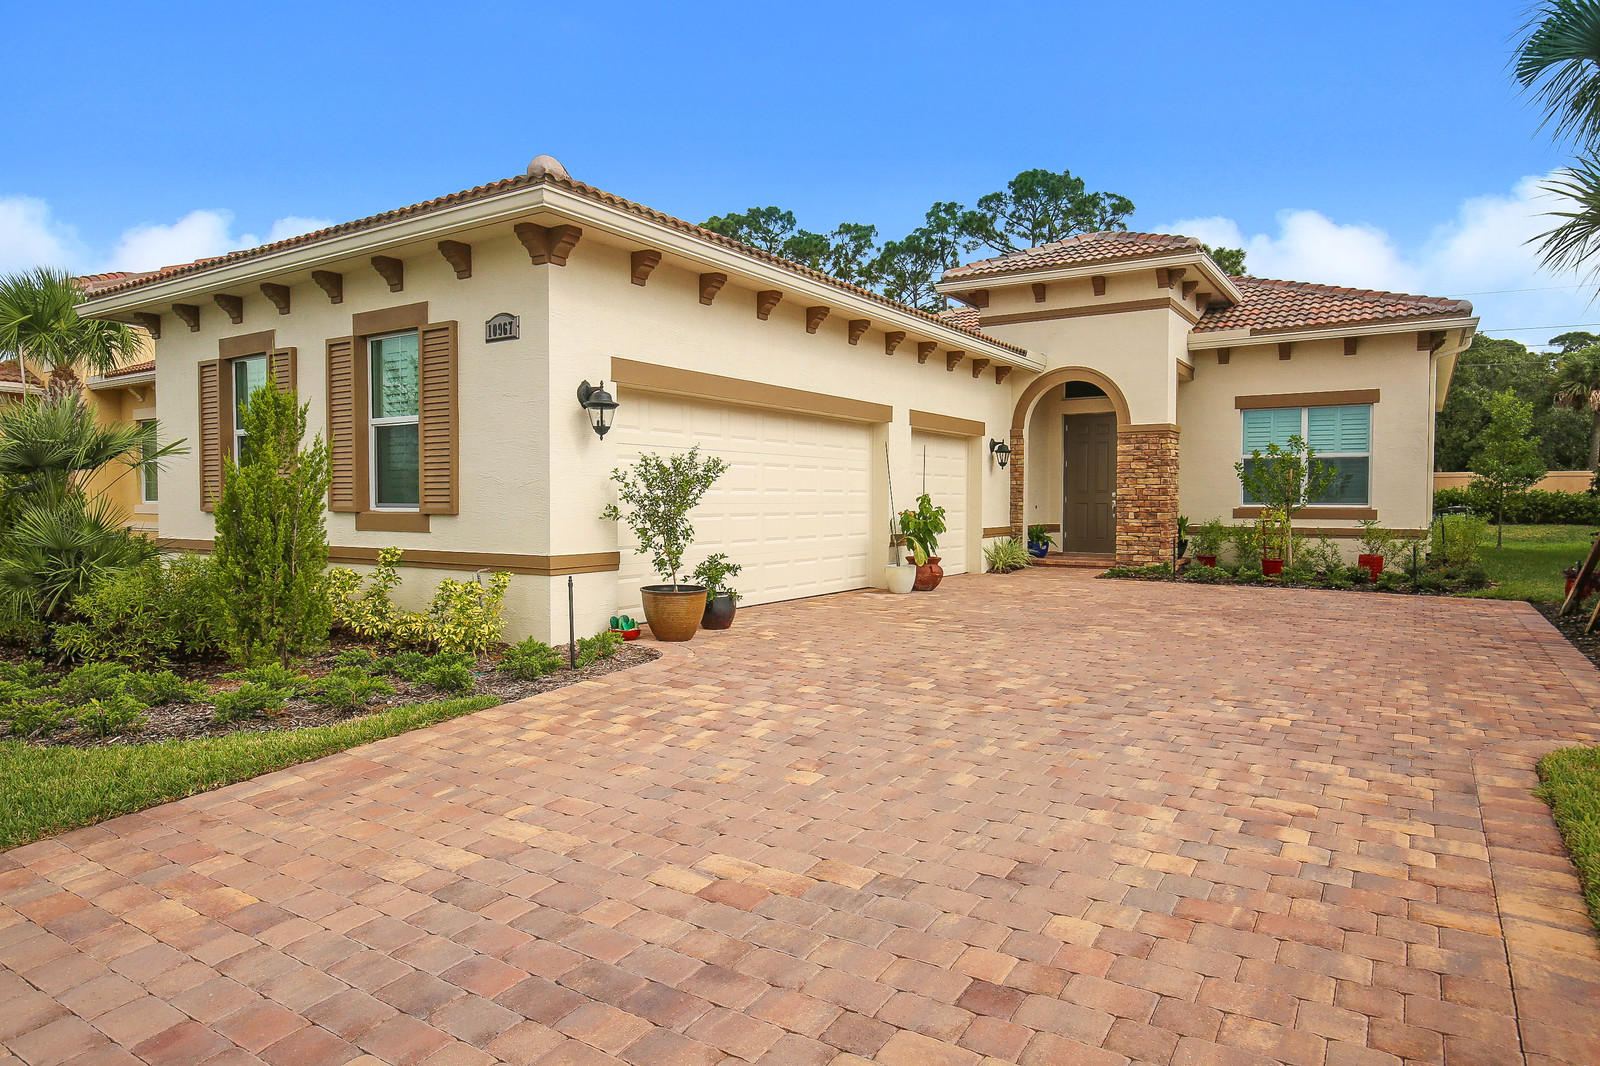 Photo of 10967 Visconti Port Saint Lucie FL 34986 MLS RX-10471402